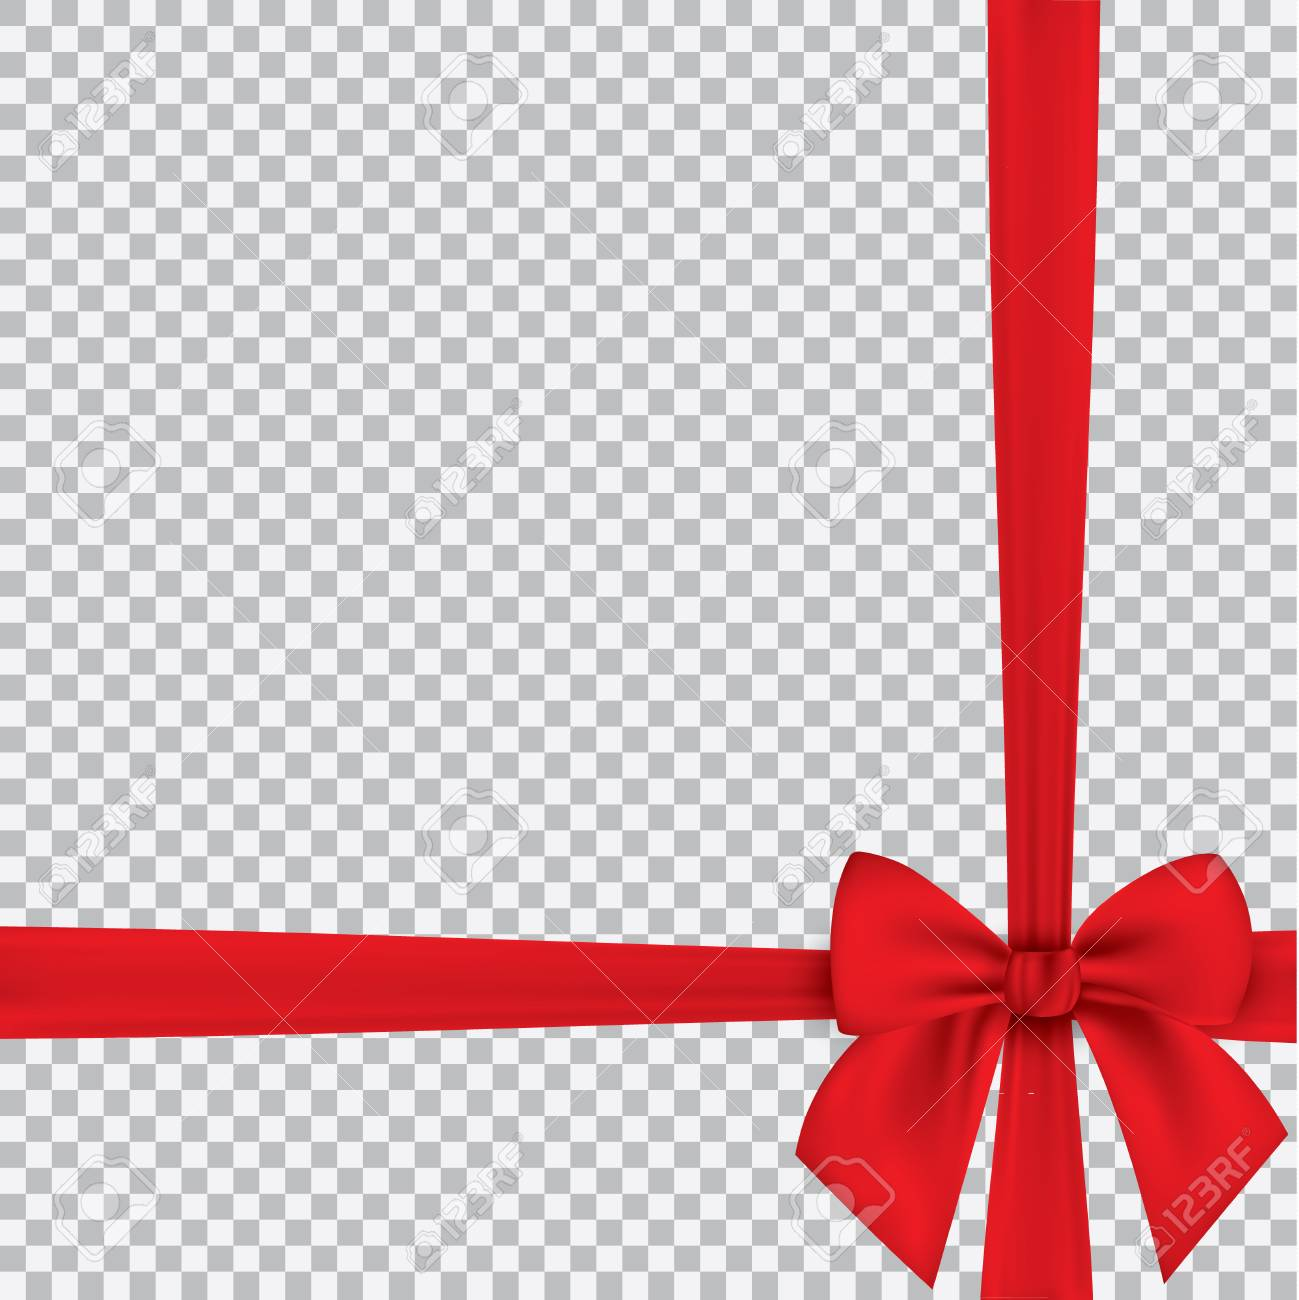 Realistic red bow and ribbon isolated on transparent background